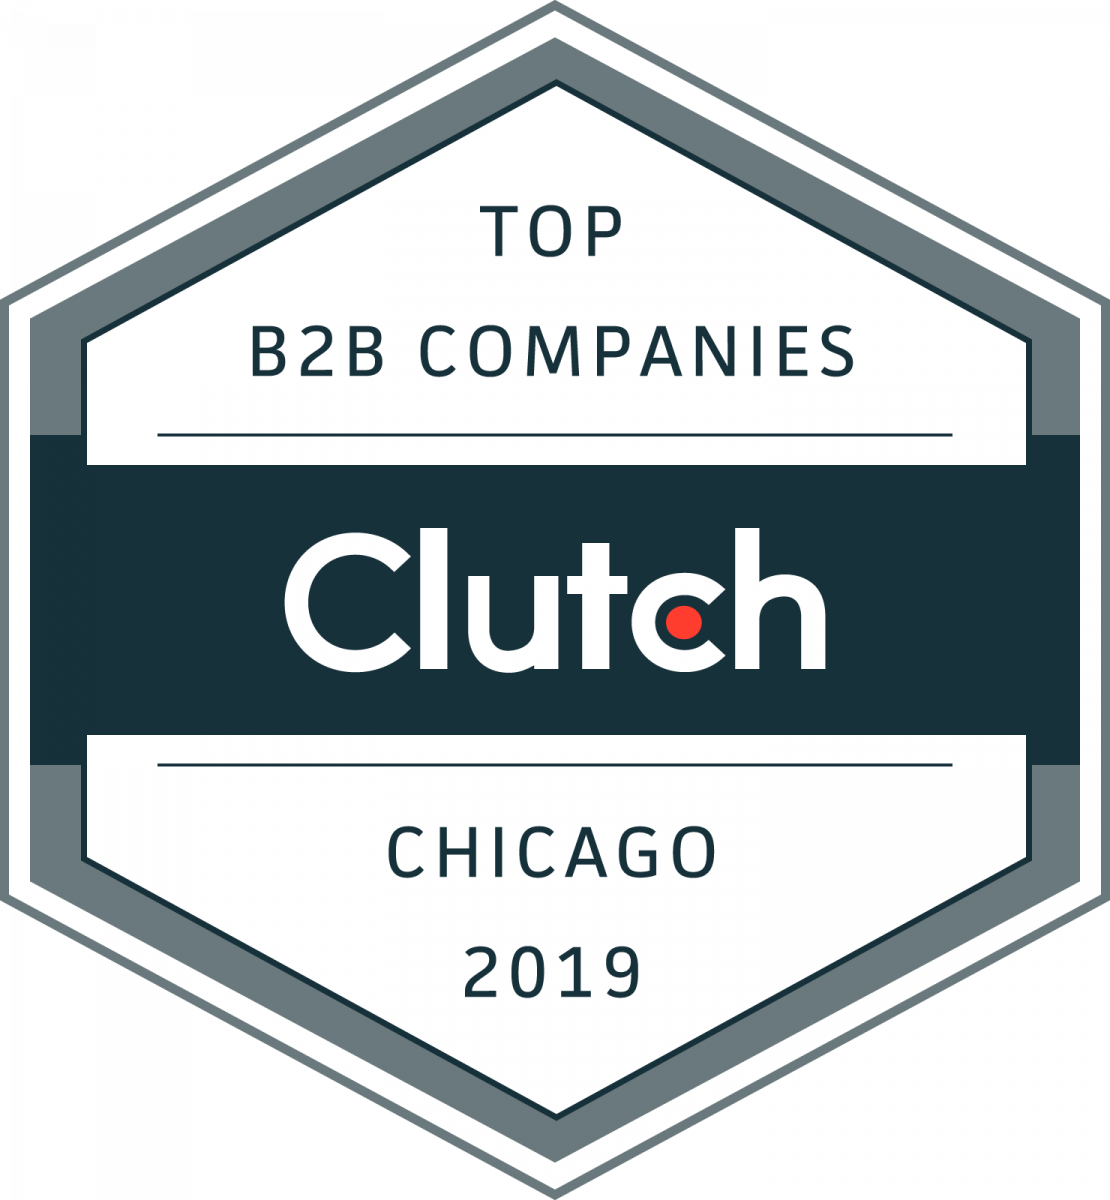 b2b_companies_chicago_2019.png